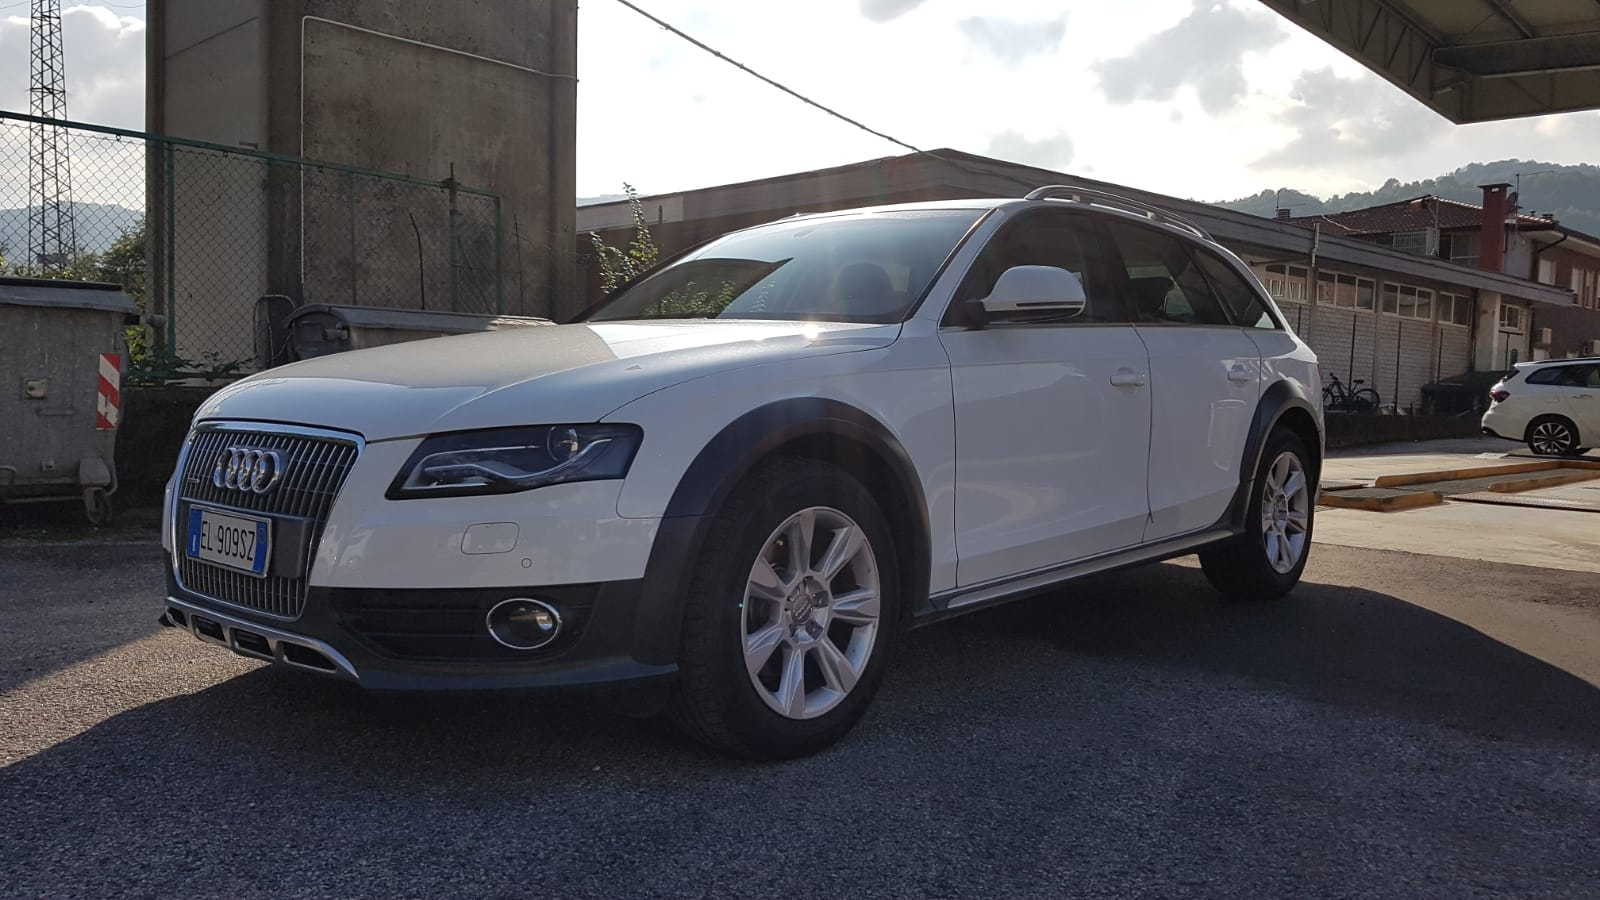 Audi A4 allroad 3.0 V6 TDI Advance Allroad